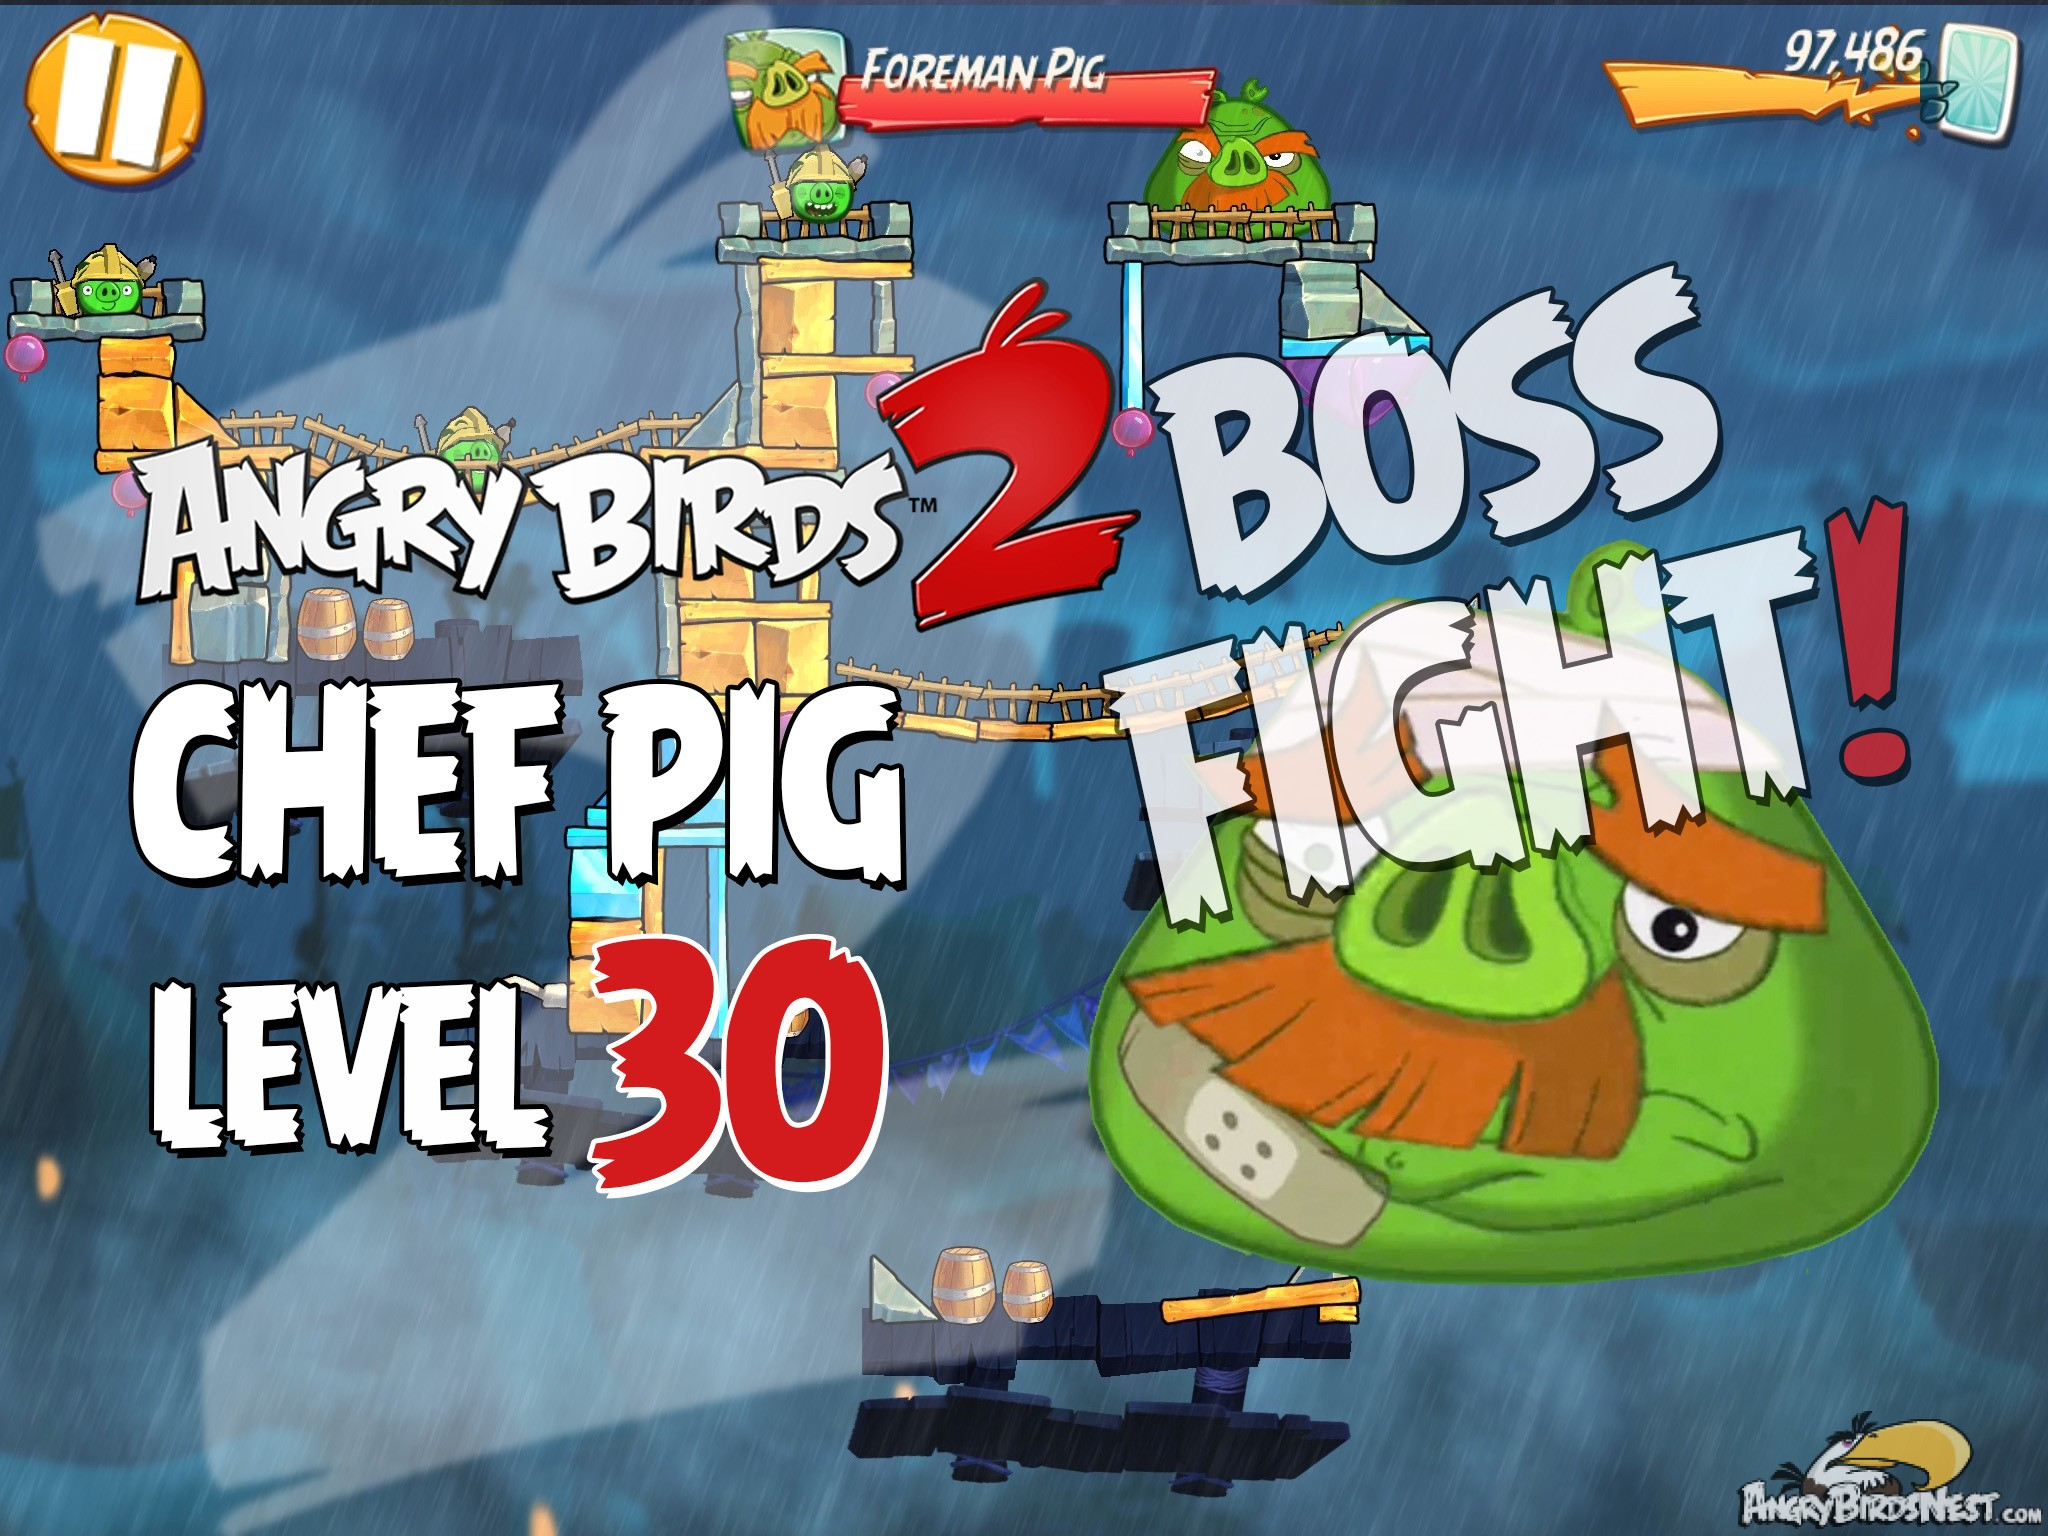 Angry Birds 2 Foreman Pig Level 30 Boss Fight Walkthrough